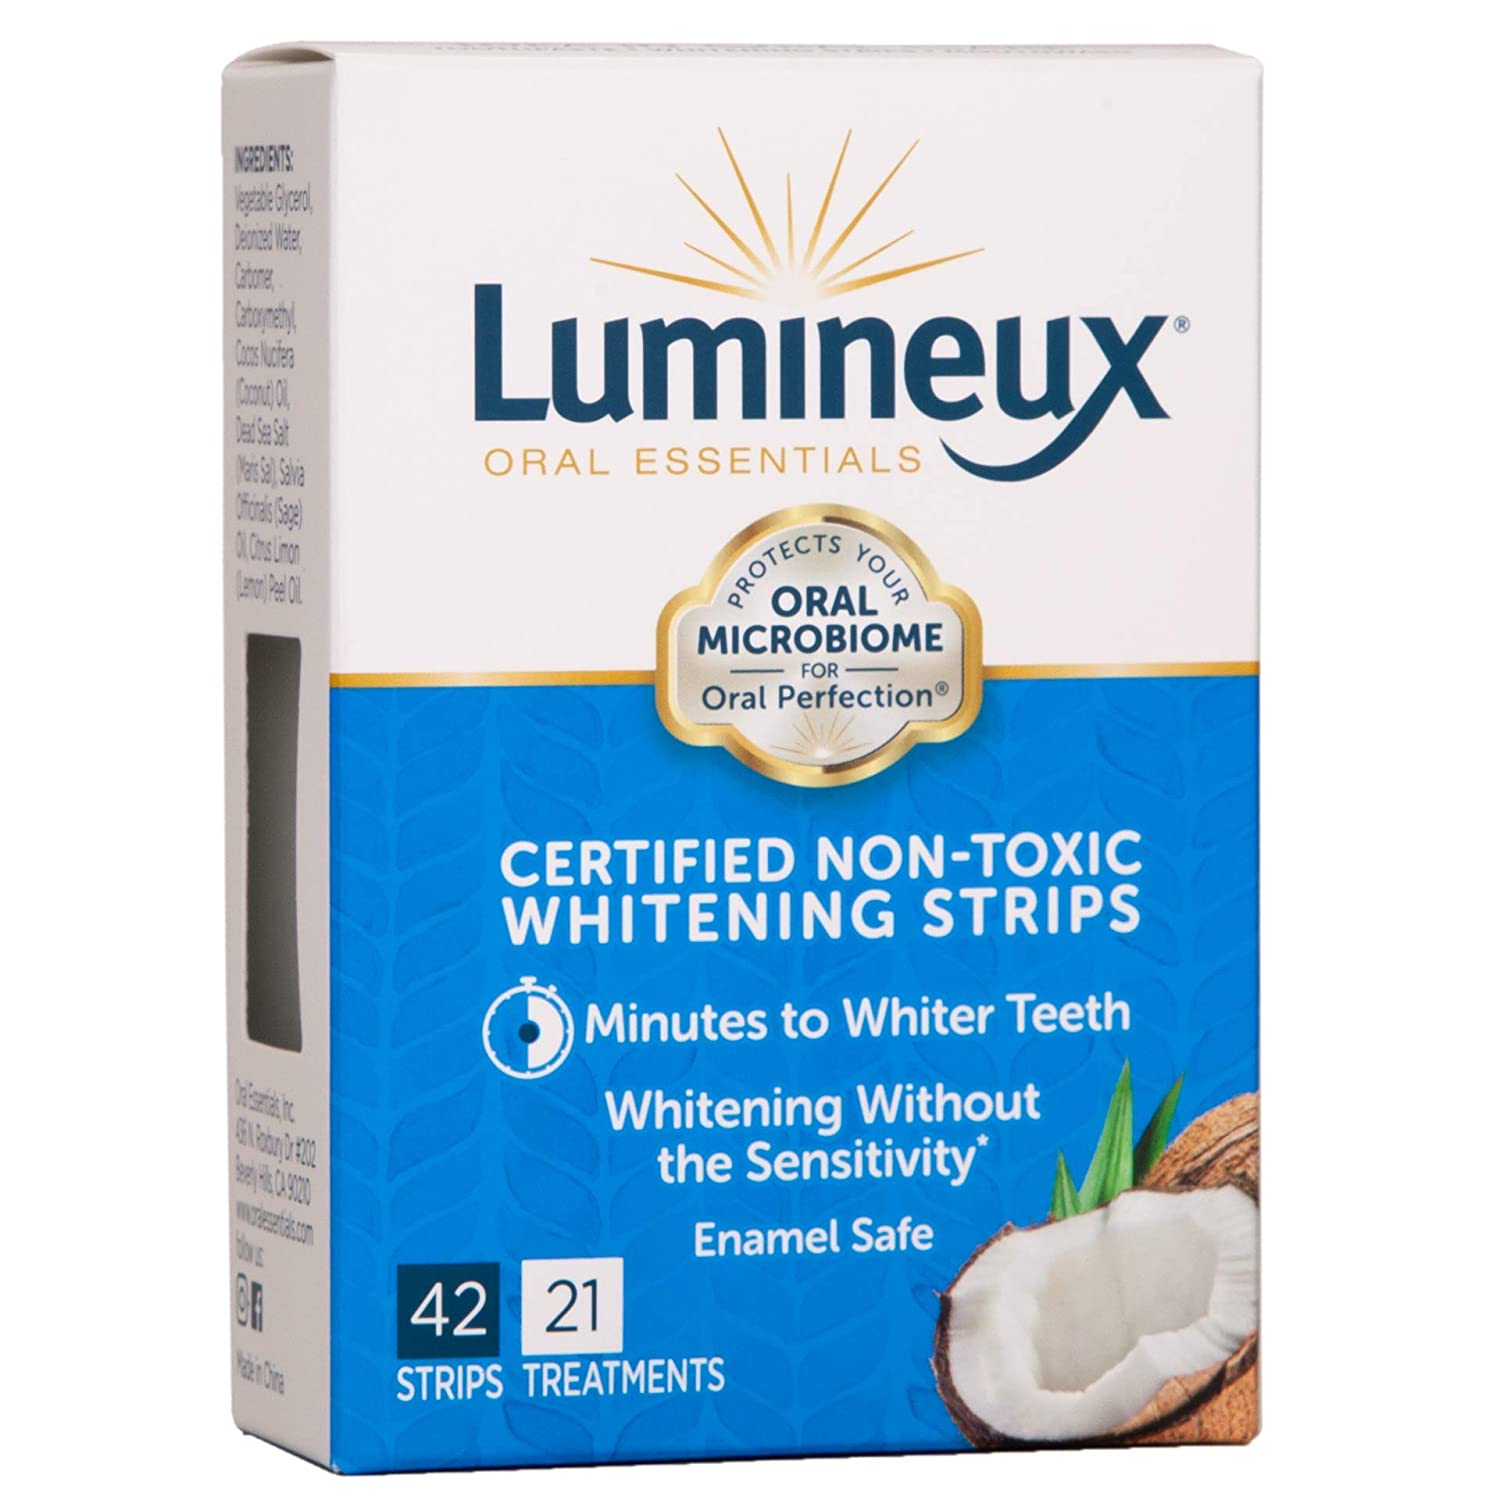 Lumineux Oral Essentials Teeth Whitening Strips | 42 Strips, 21 Treatments | Certified Non Toxic | Sensitivity Free | Whiter Teeth 7 Days | NO Artificial Flavors, Colors, SLS Free, Dentist Form